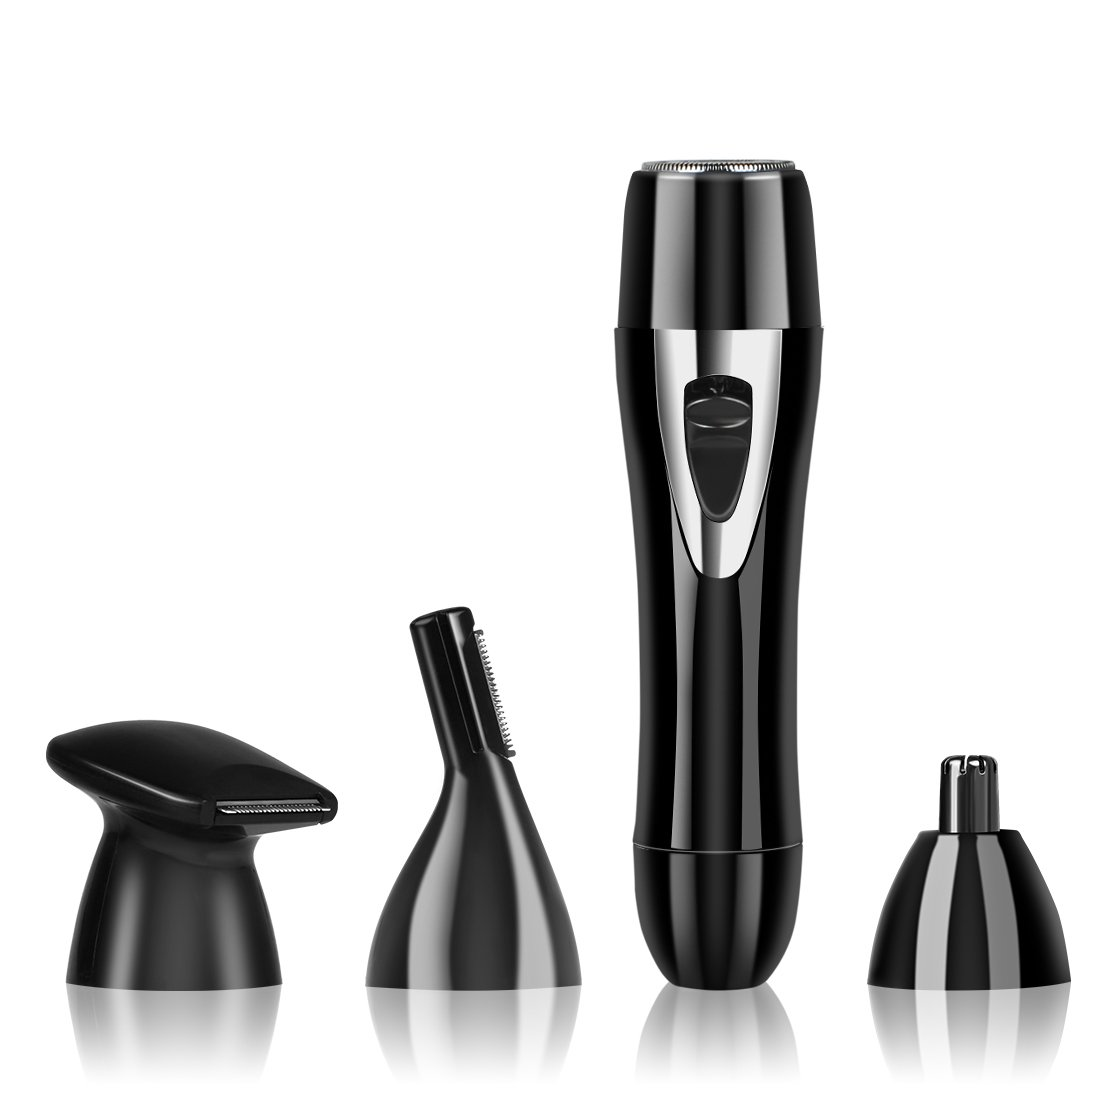 Hair Remover for Women, Foraco Professional Waterproof 4 in 1 Flawless Hair Trimmer Epilator Tool Set for Facial & Body, USB Rechargeable, Black (Black)